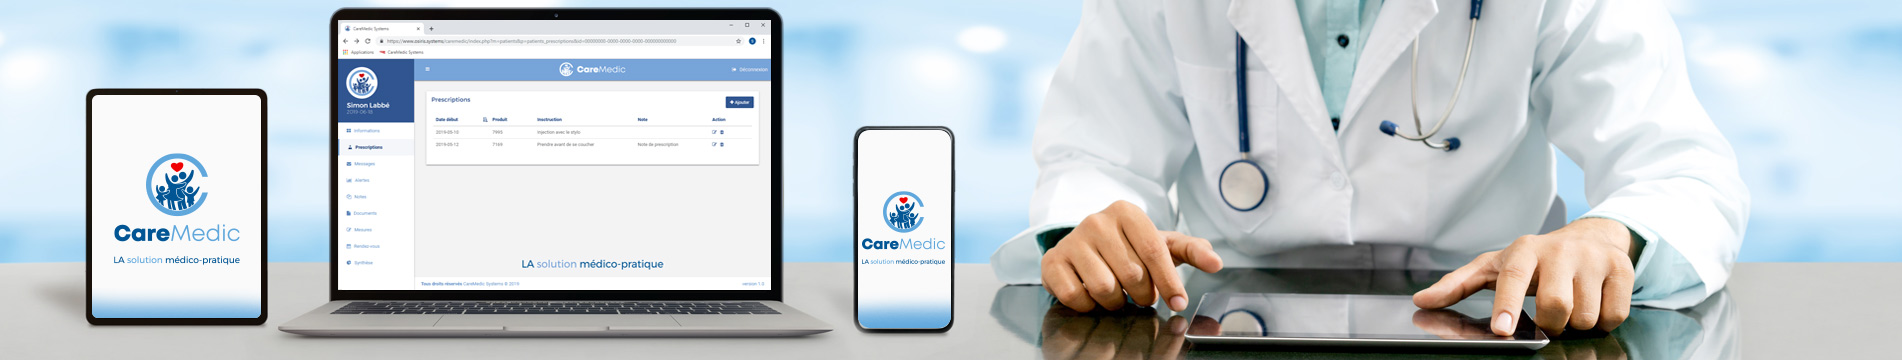 Solution CareMedic - Banniere - La solution medico pratique medecin pharmacien infirmier patients dossier medical application